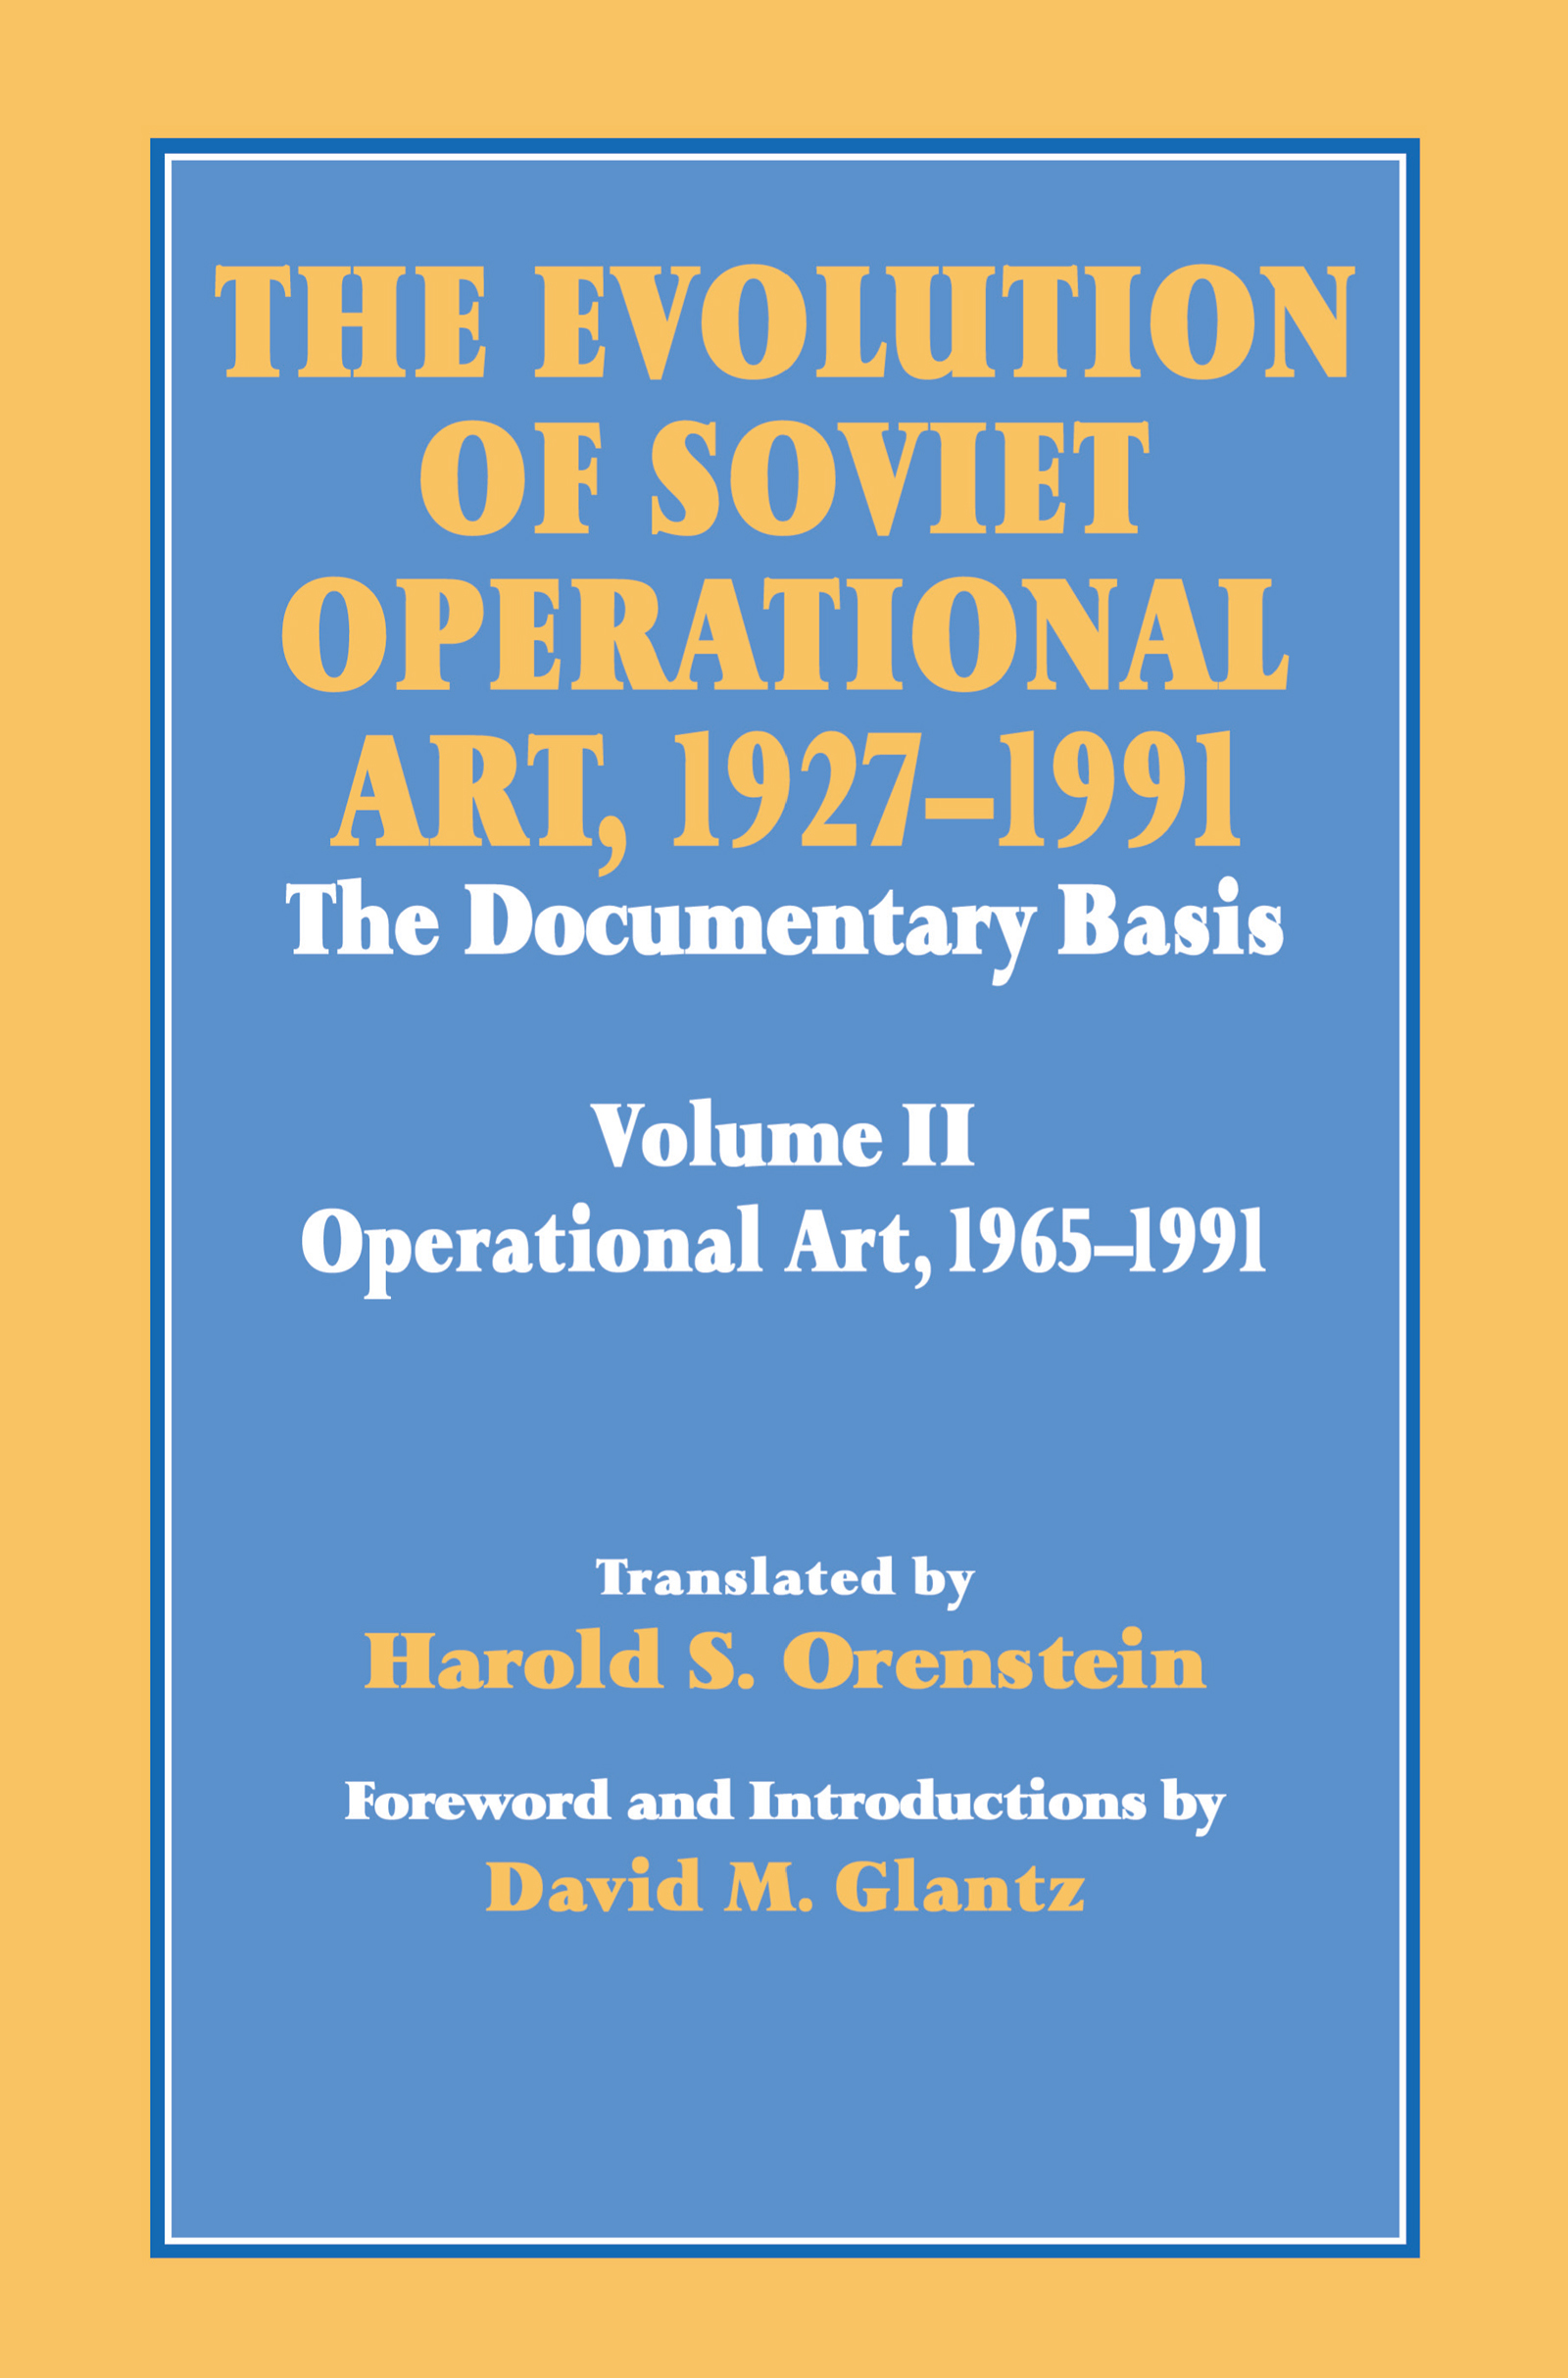 The Evolution of Soviet Operational Art, 1927-1991: The Documentary Basis: Volume 2 (1965-1991) book cover